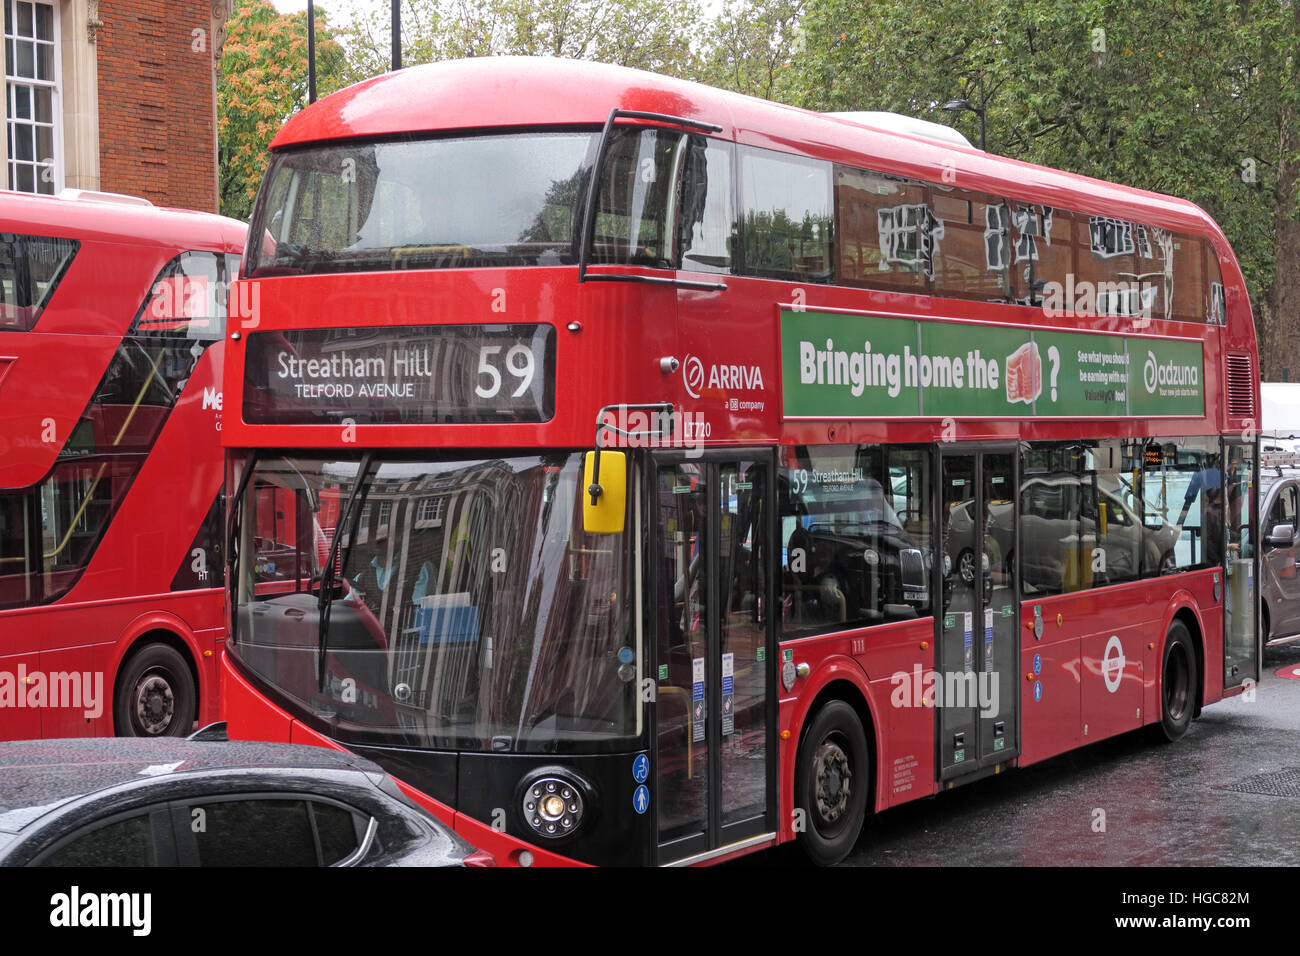 Hill,city,central,London,LDN,public,transport,transit,mass,private,privatised,regulated,deregulated,Boris,AEC,doors,door,London